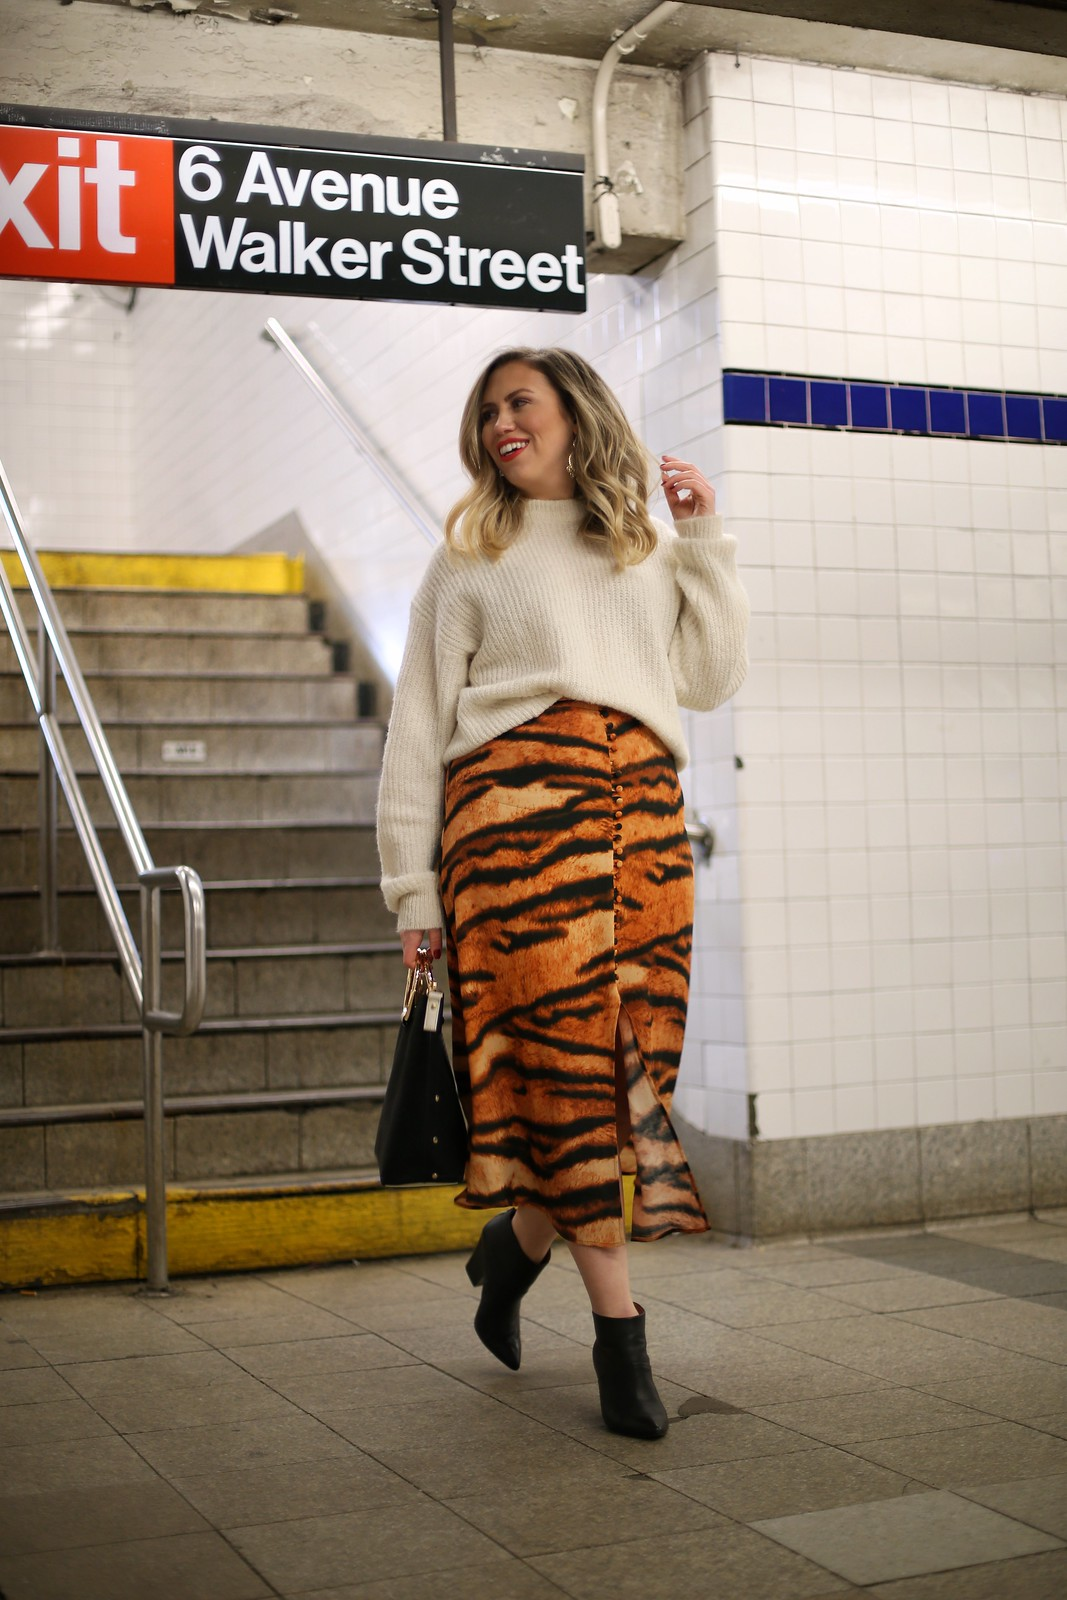 White Reformation Finn Sweater ASOS Orange Tiger Print Skirt Winter Outfit Canal Street Subway Fashion Photo Shoot